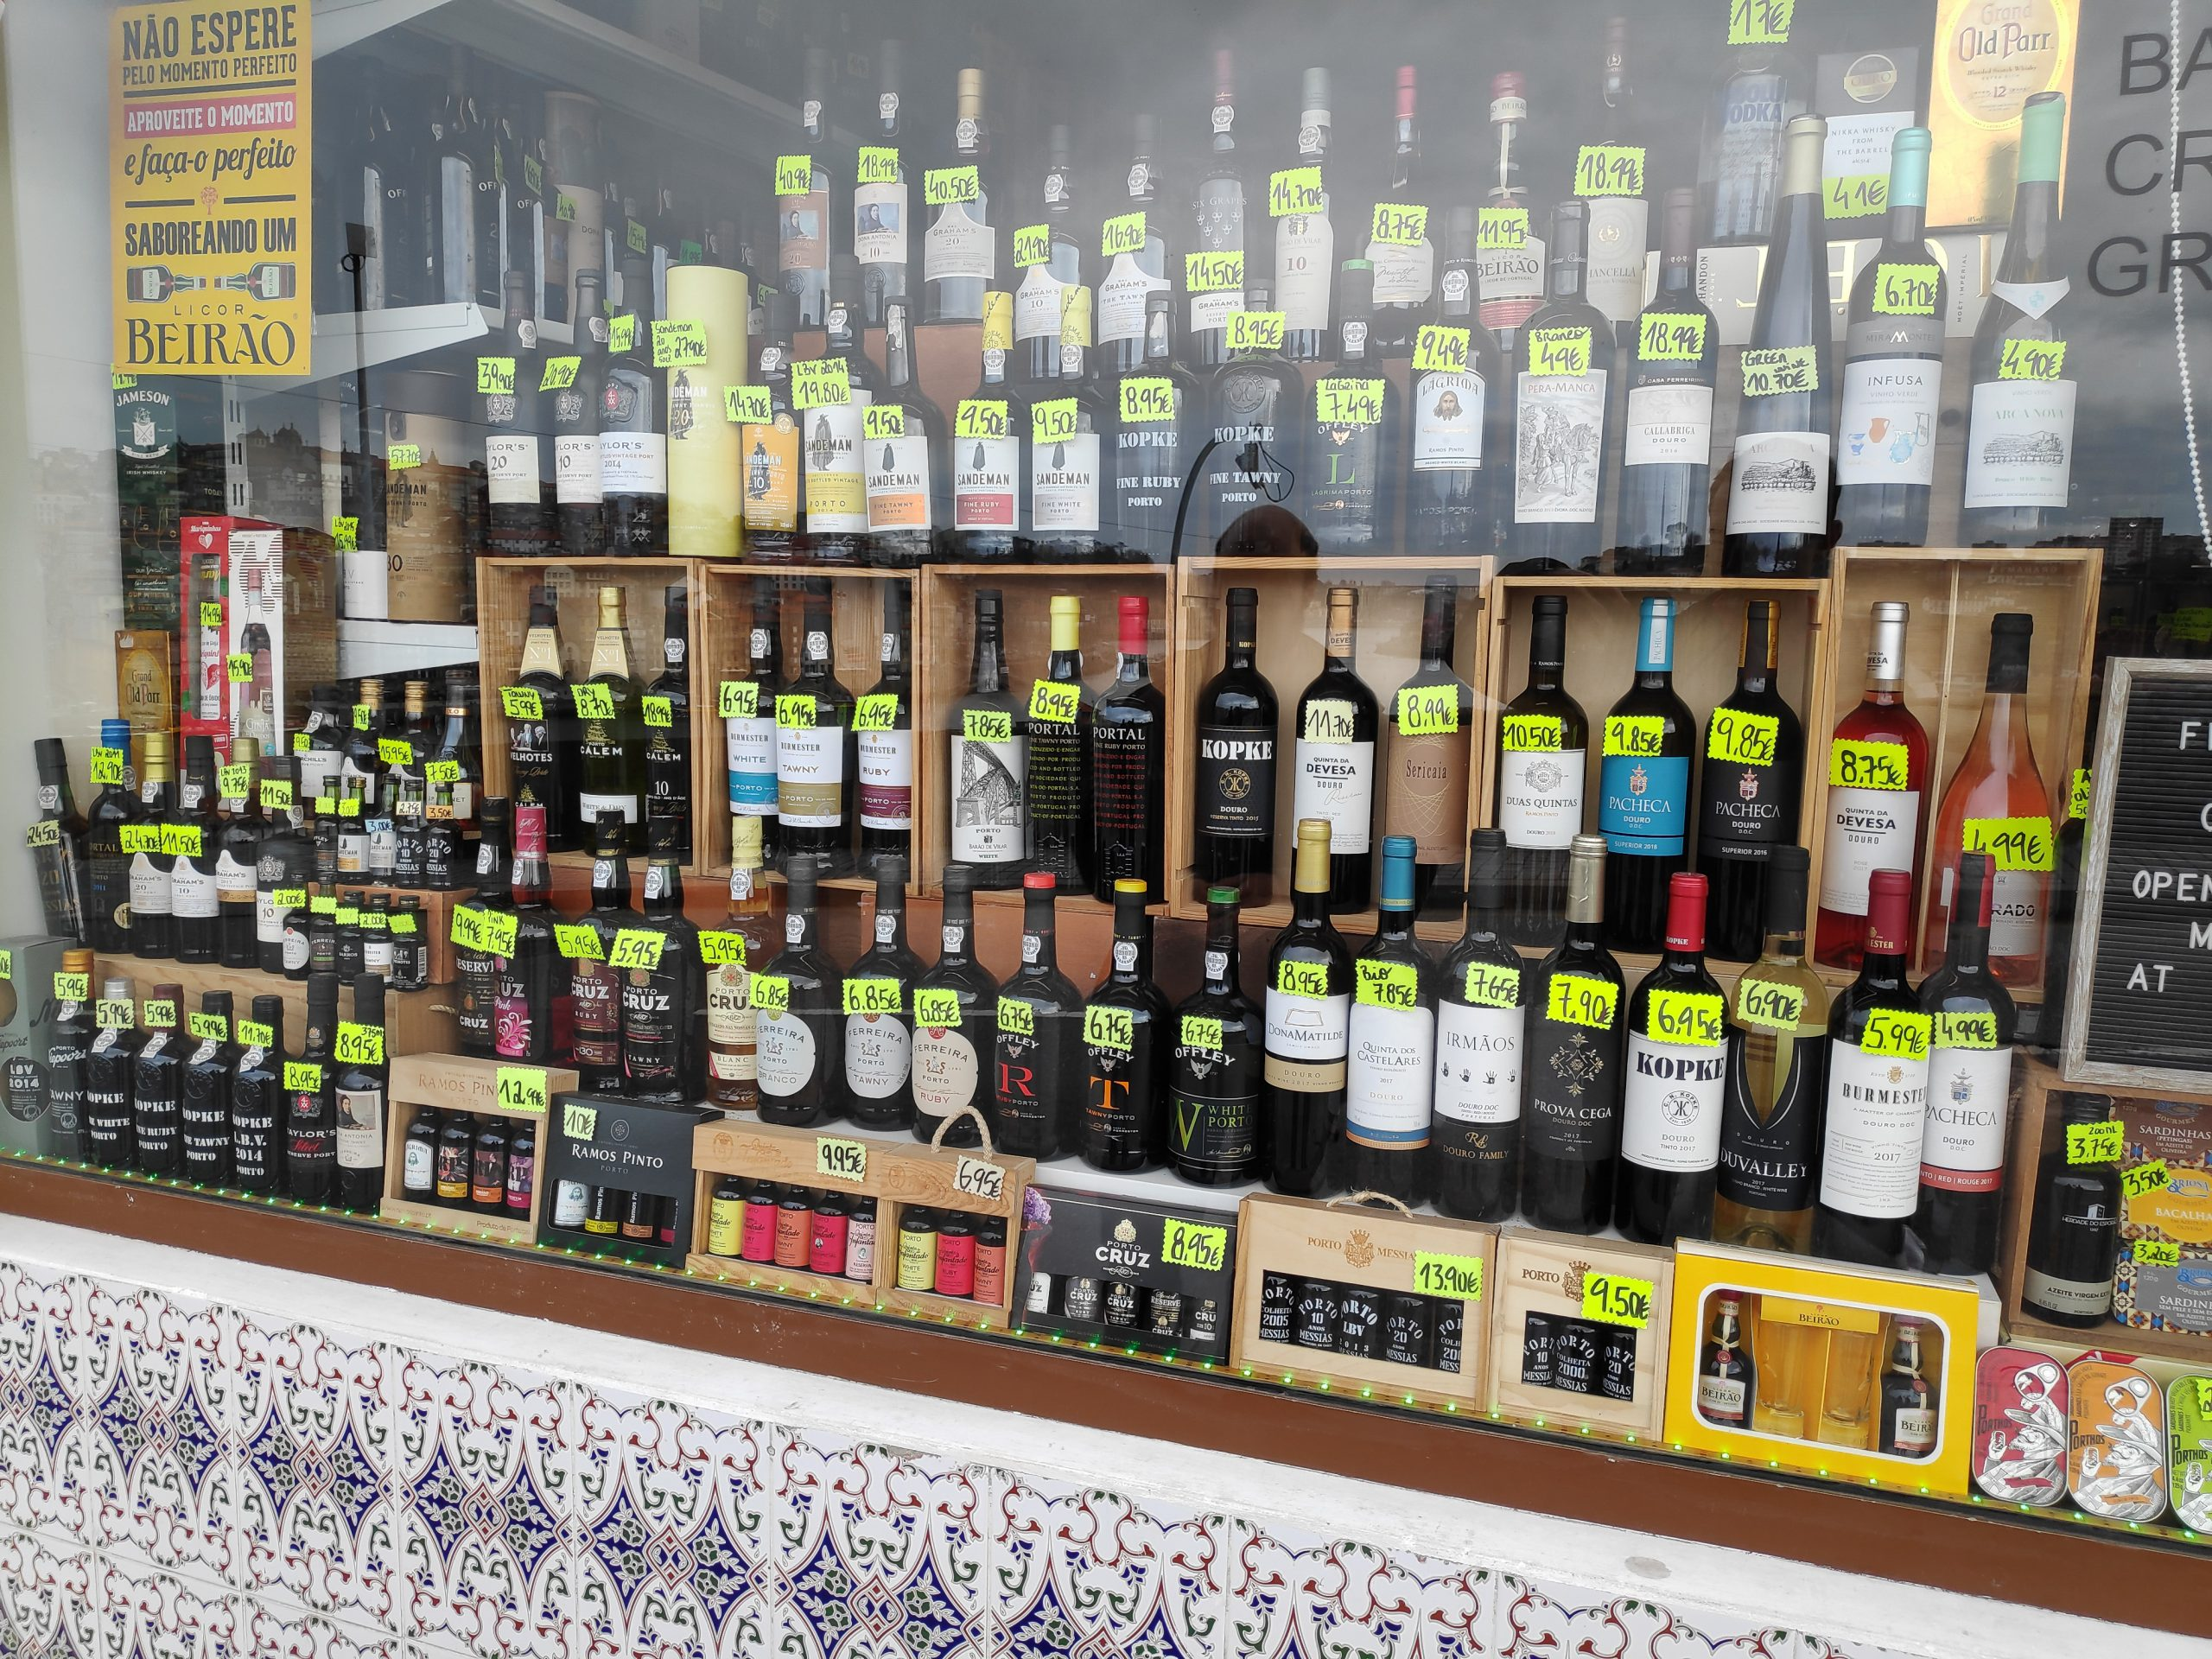 There are a couple of stores that specialize in Porto wine. You can get it as cheaply as 5€ or go into thousands of € per bottle.